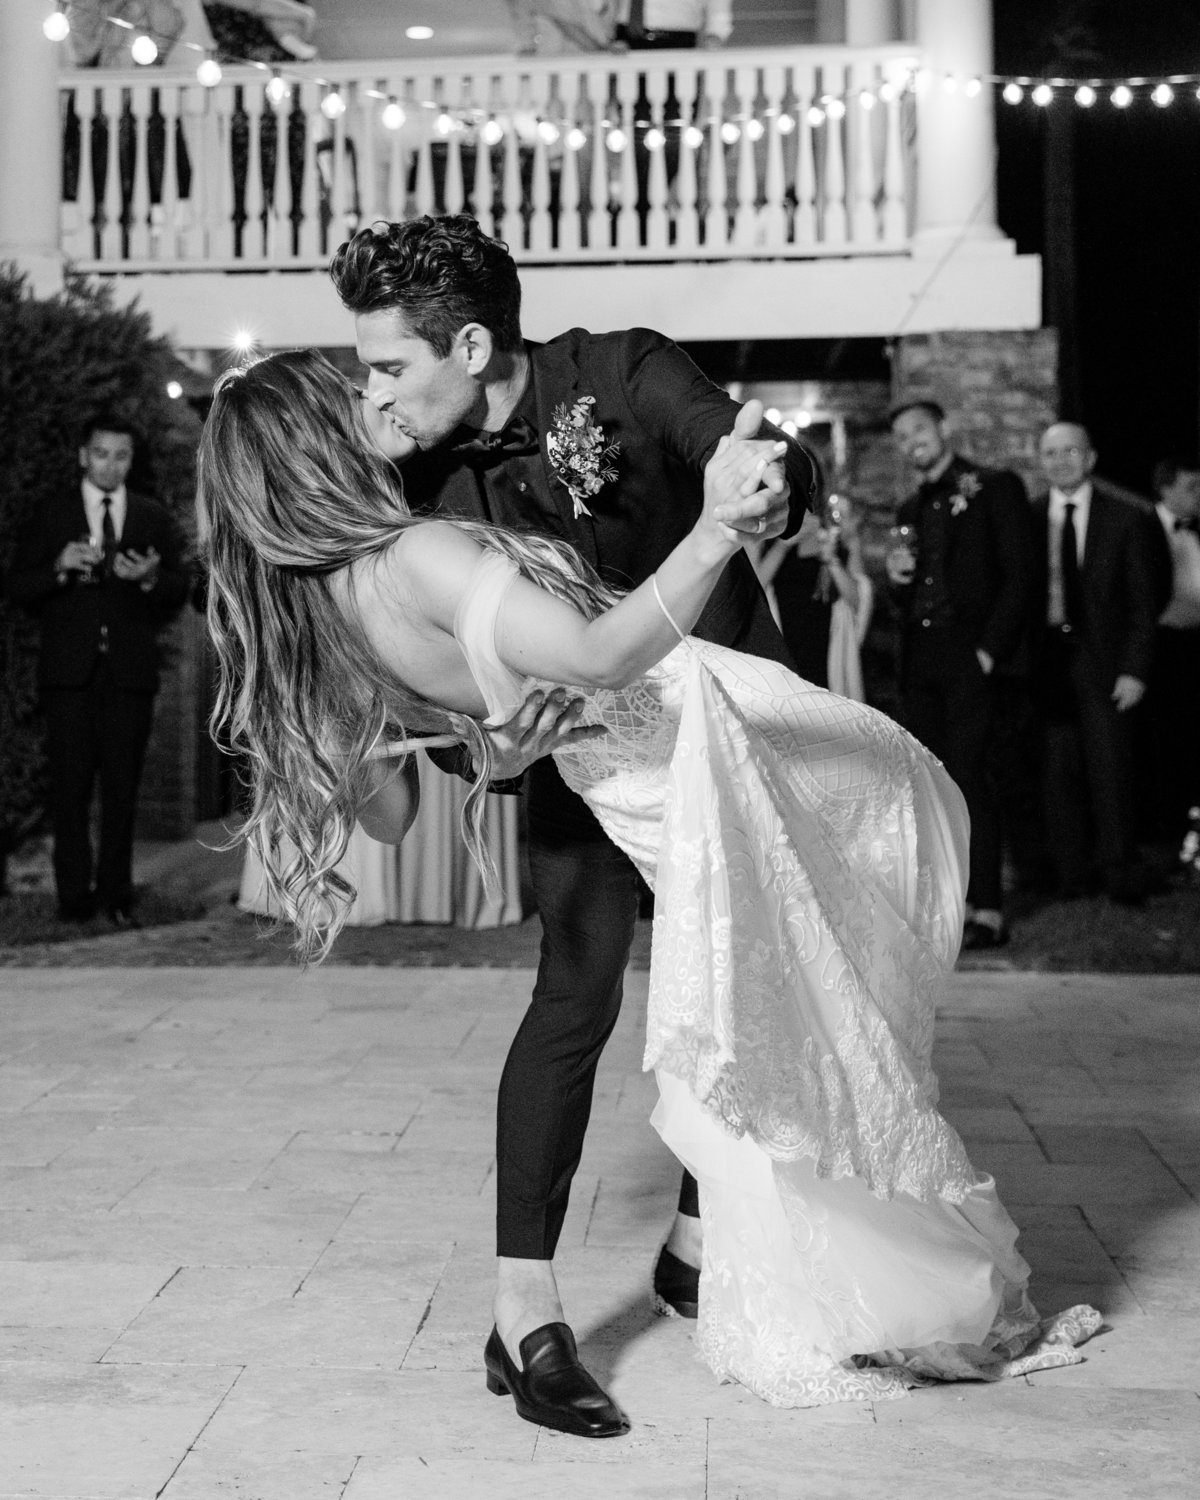 The best first dance dip at wedding ever.